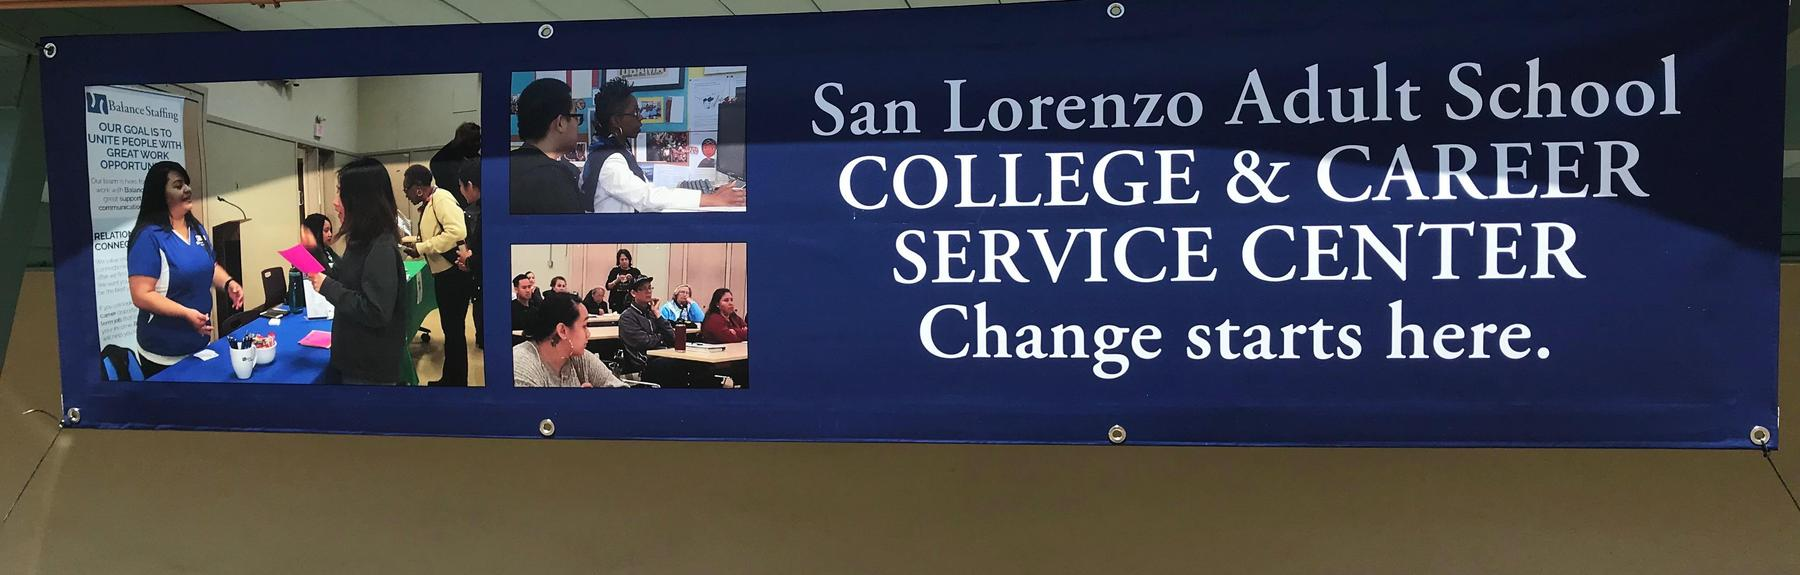 San Lorenzo Adult School College and Career Center change starts here